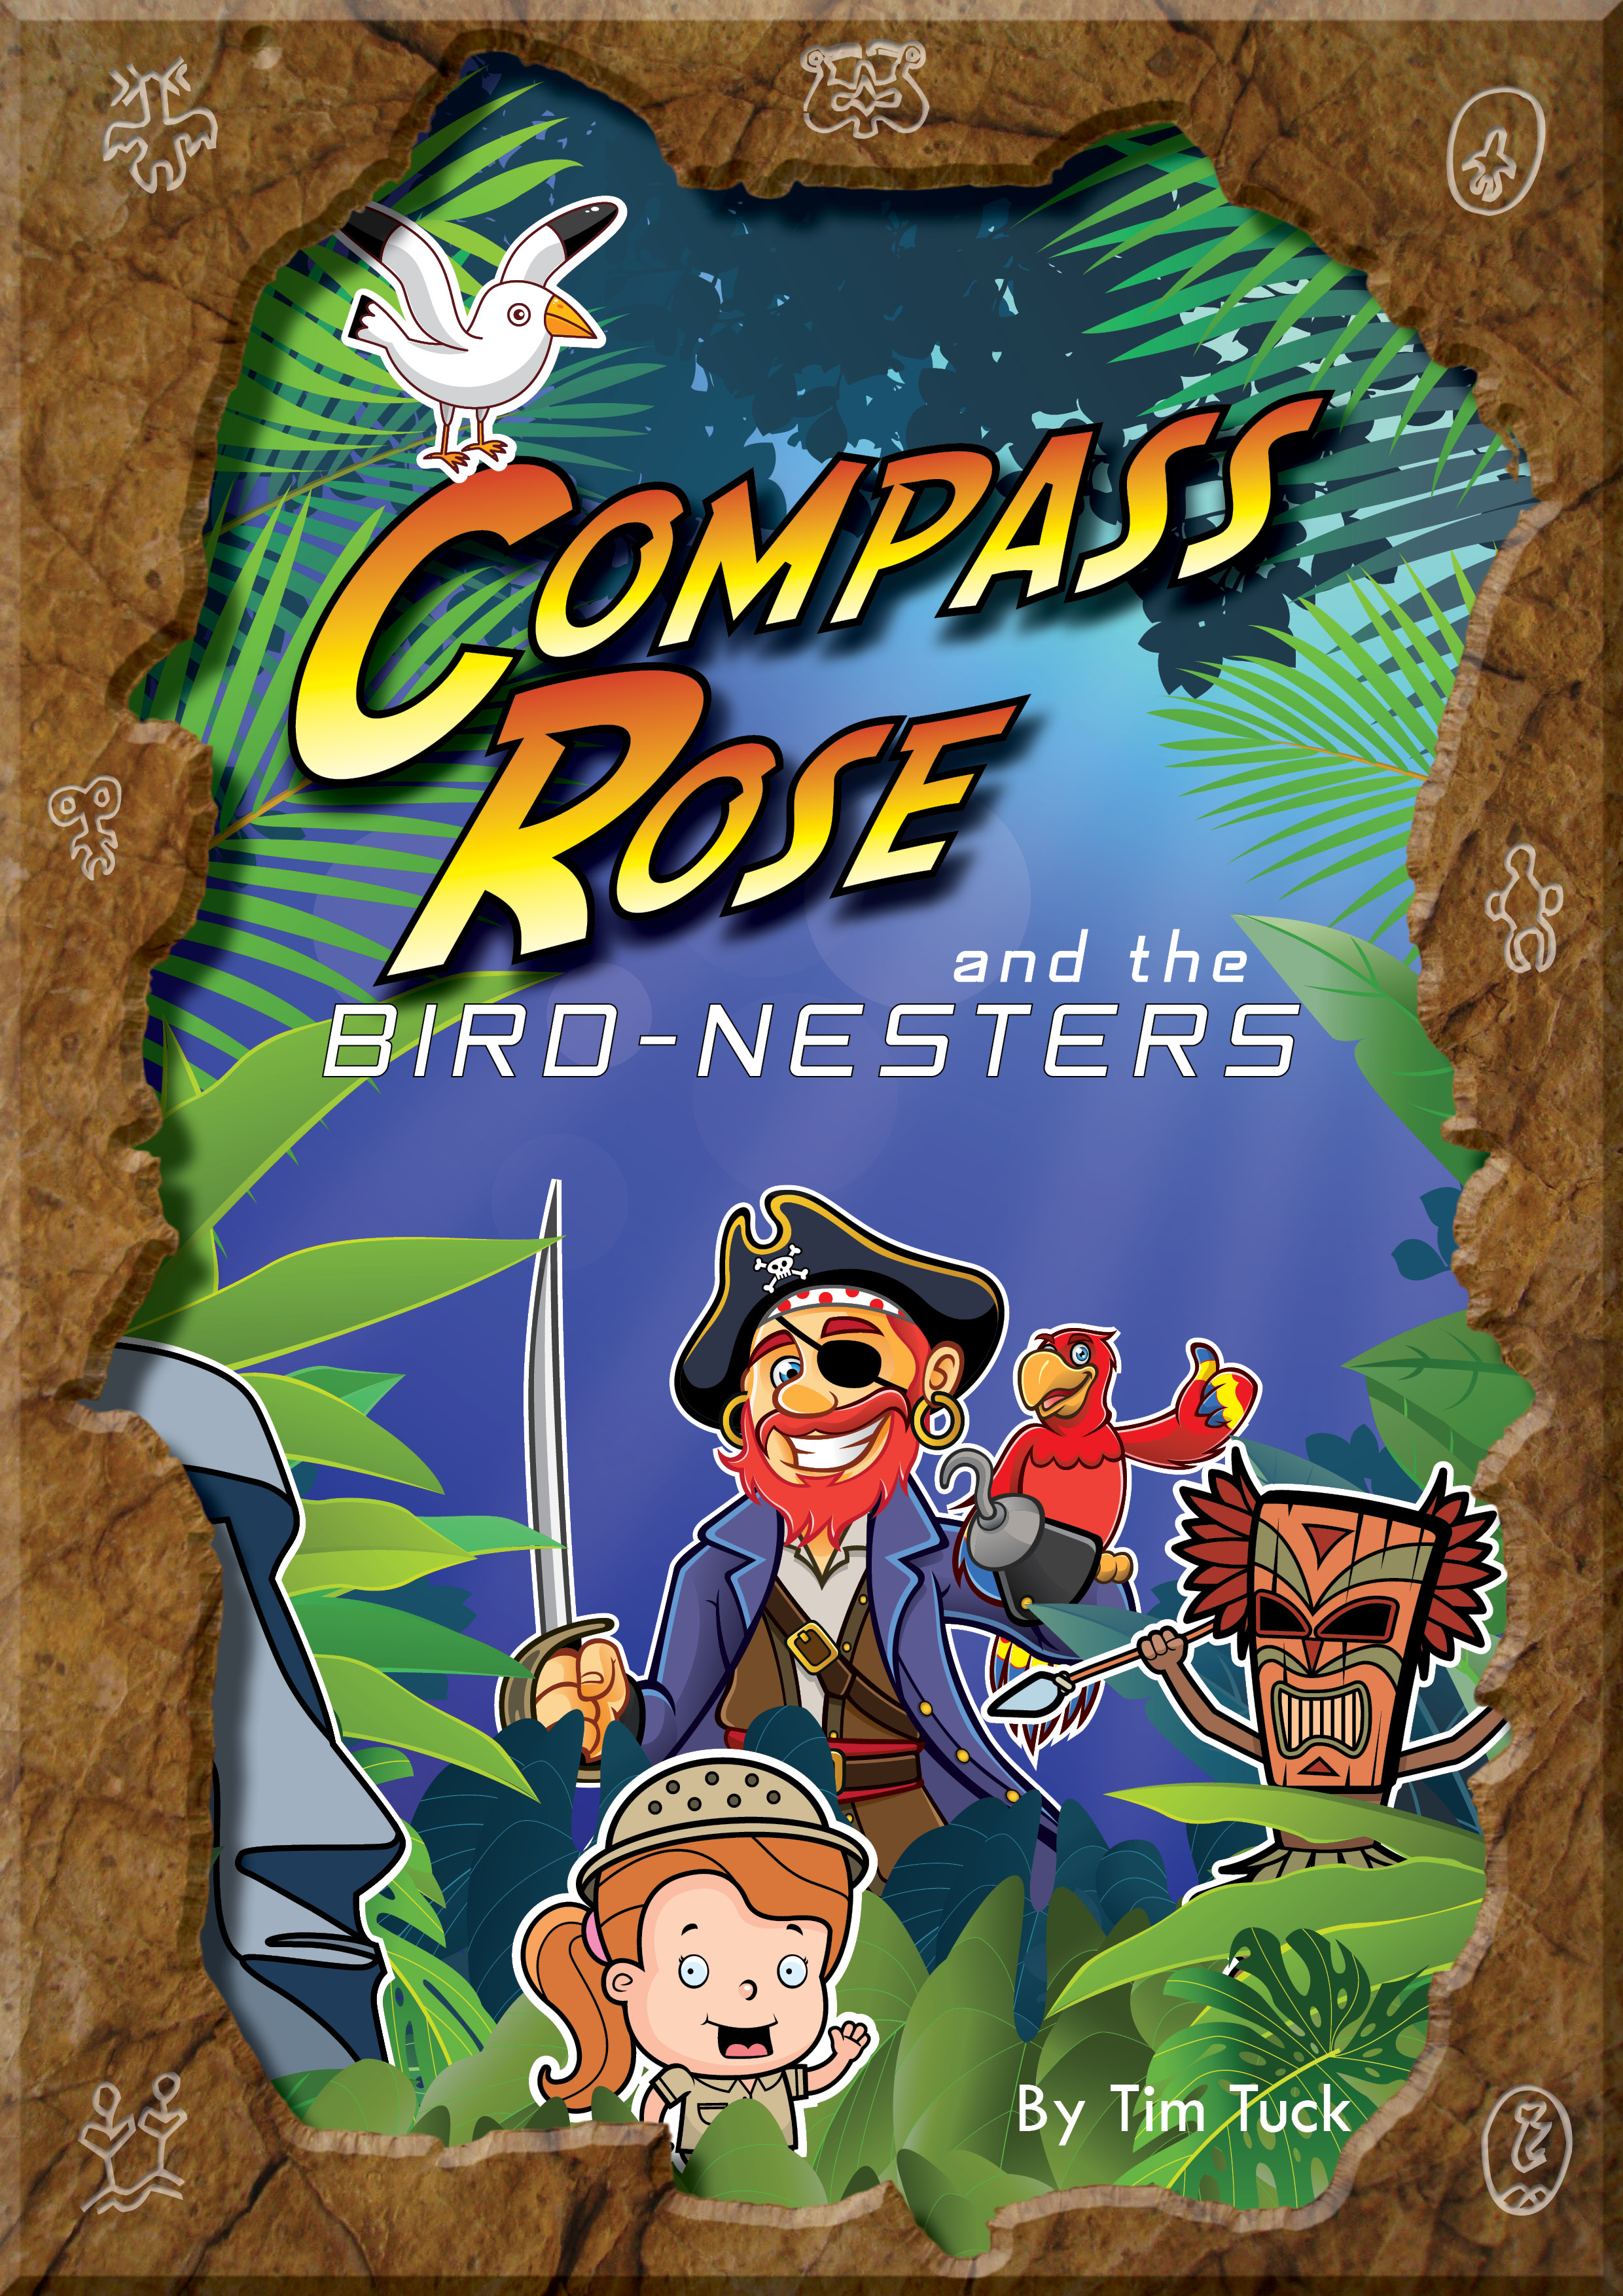 Compass Rose and the Birdnesters Poster